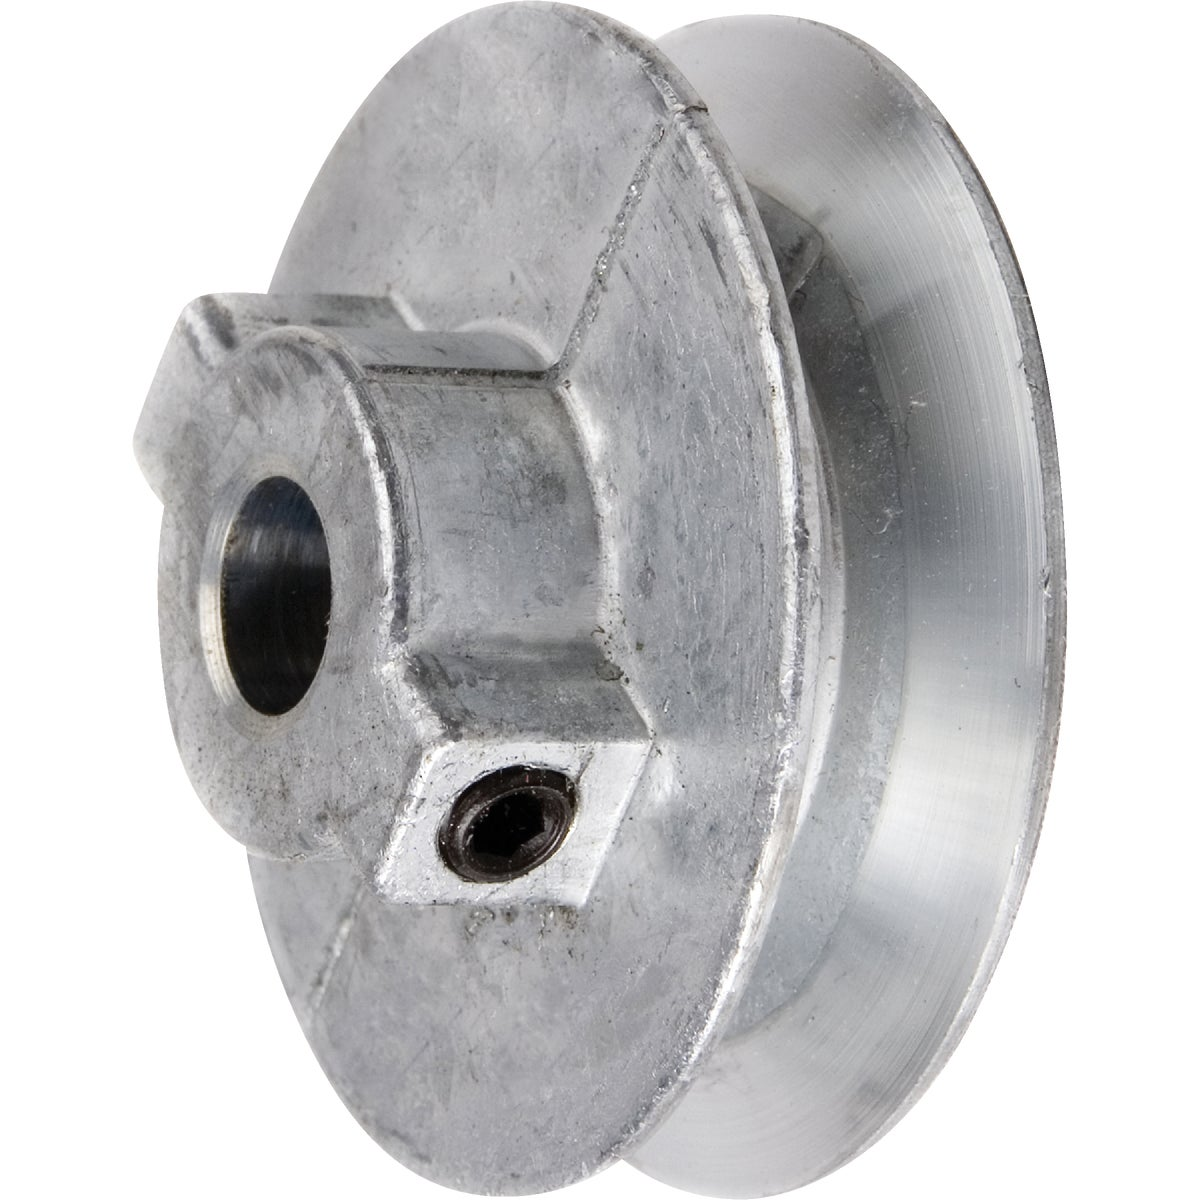 8X3/4 PULLEY - 800A7 by Chicago Die Casting